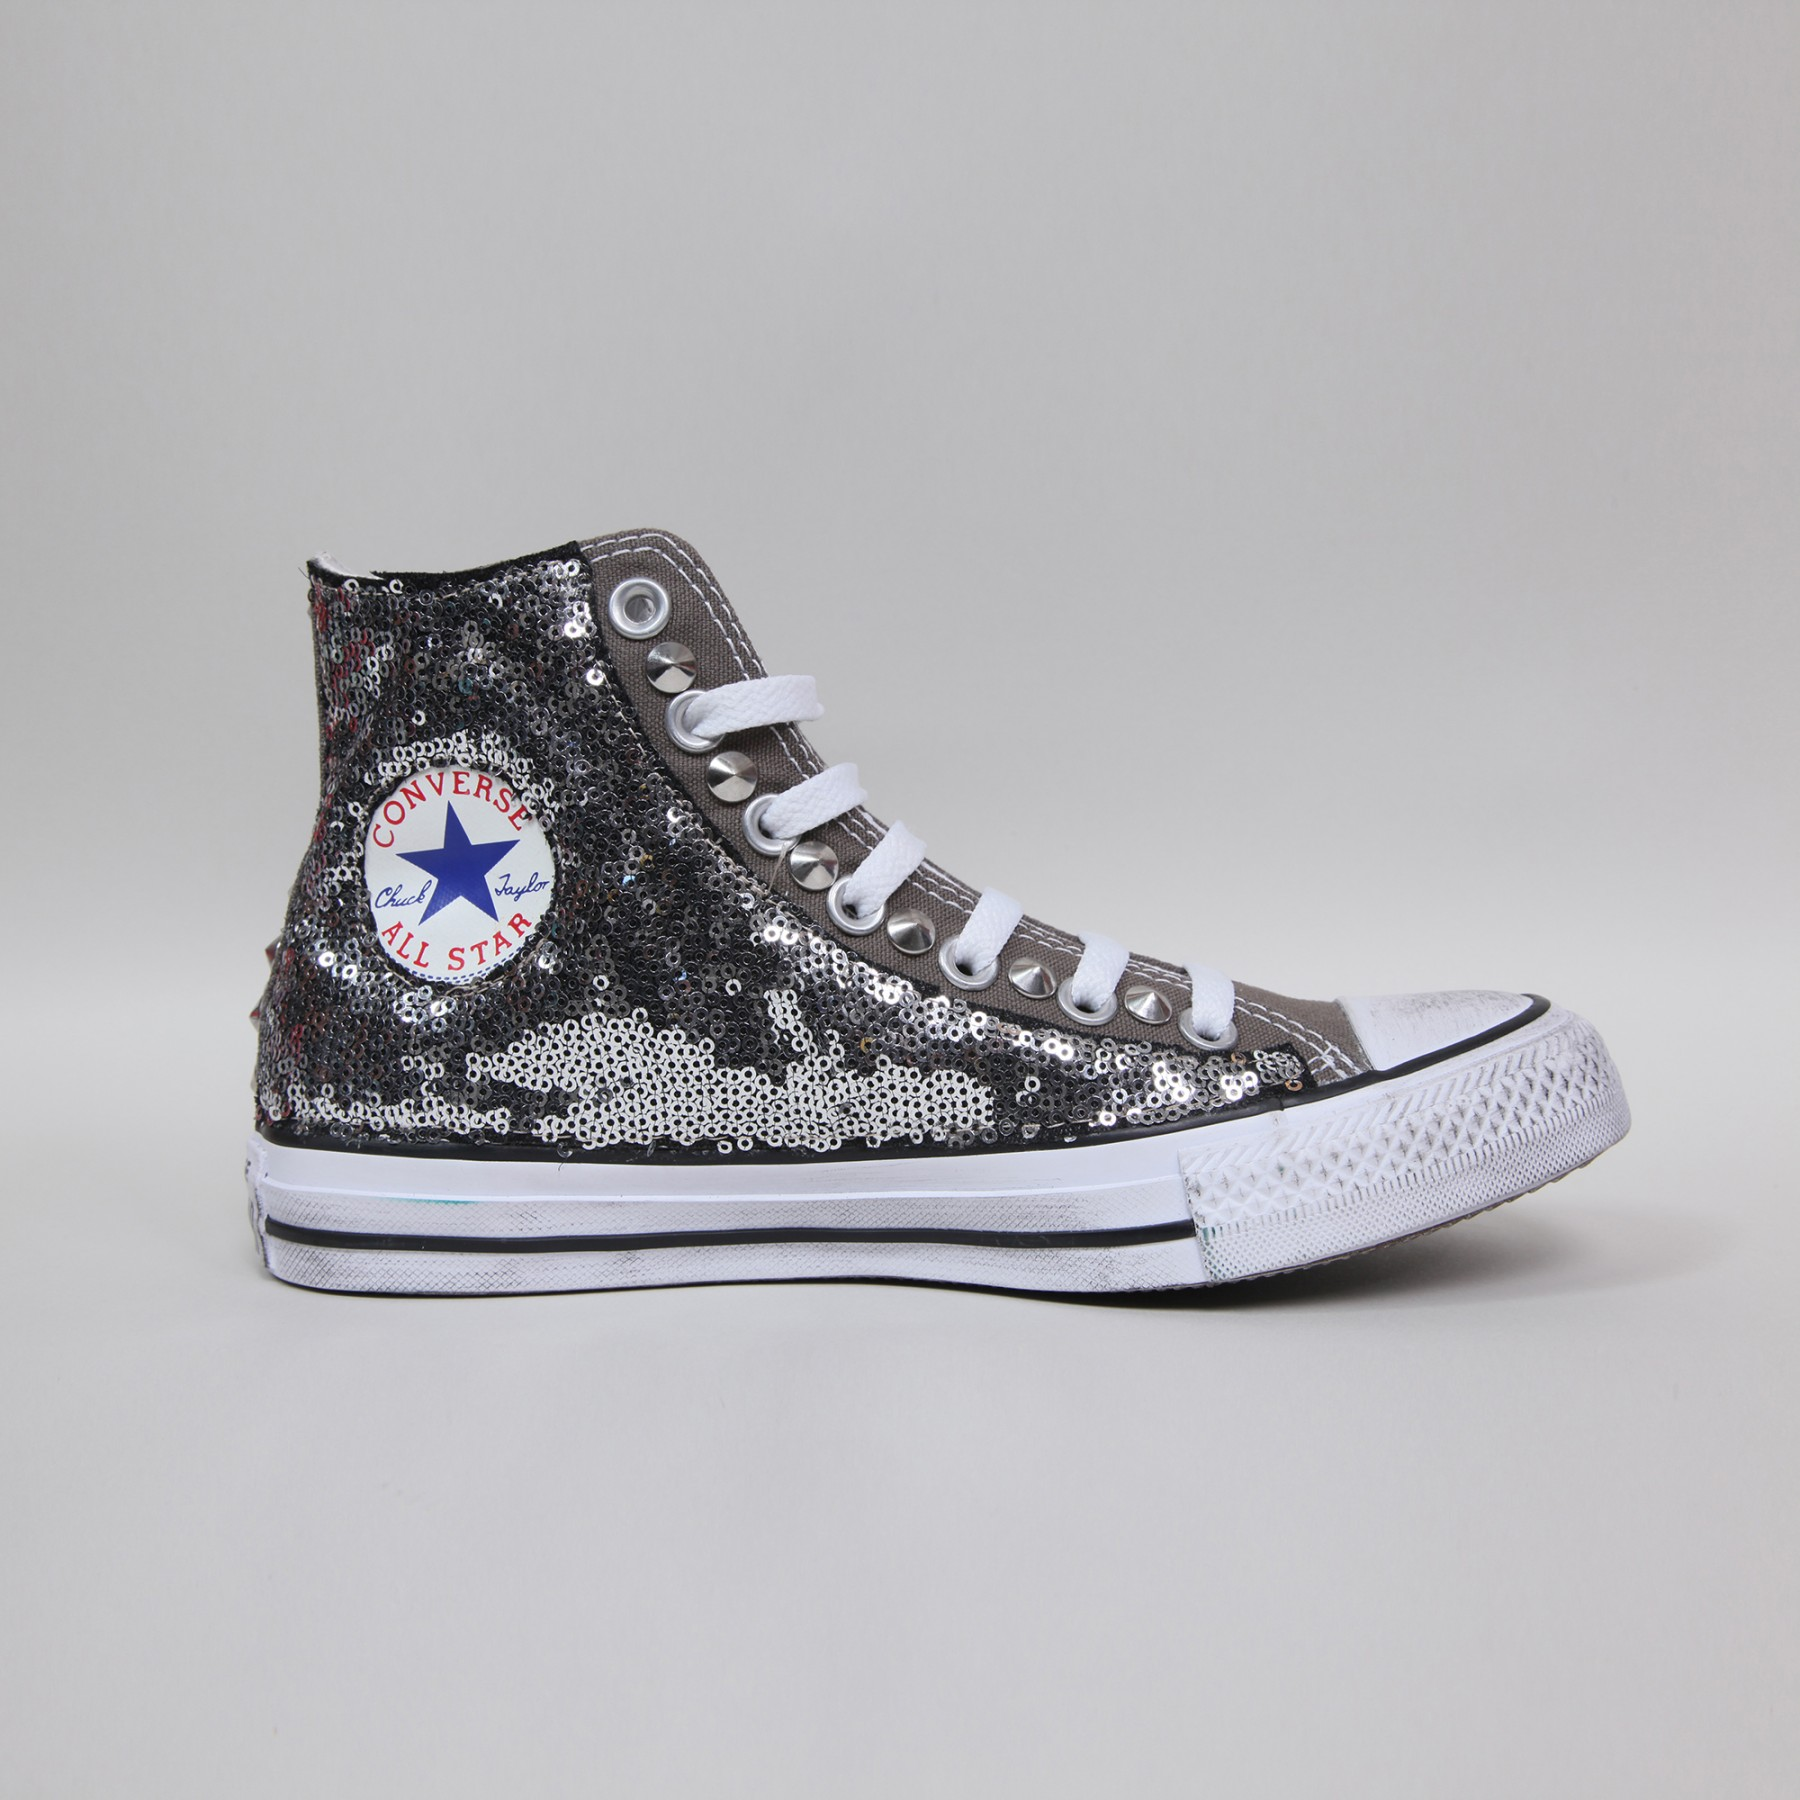 converse hi charcoal paillettes grigie converse. Black Bedroom Furniture Sets. Home Design Ideas